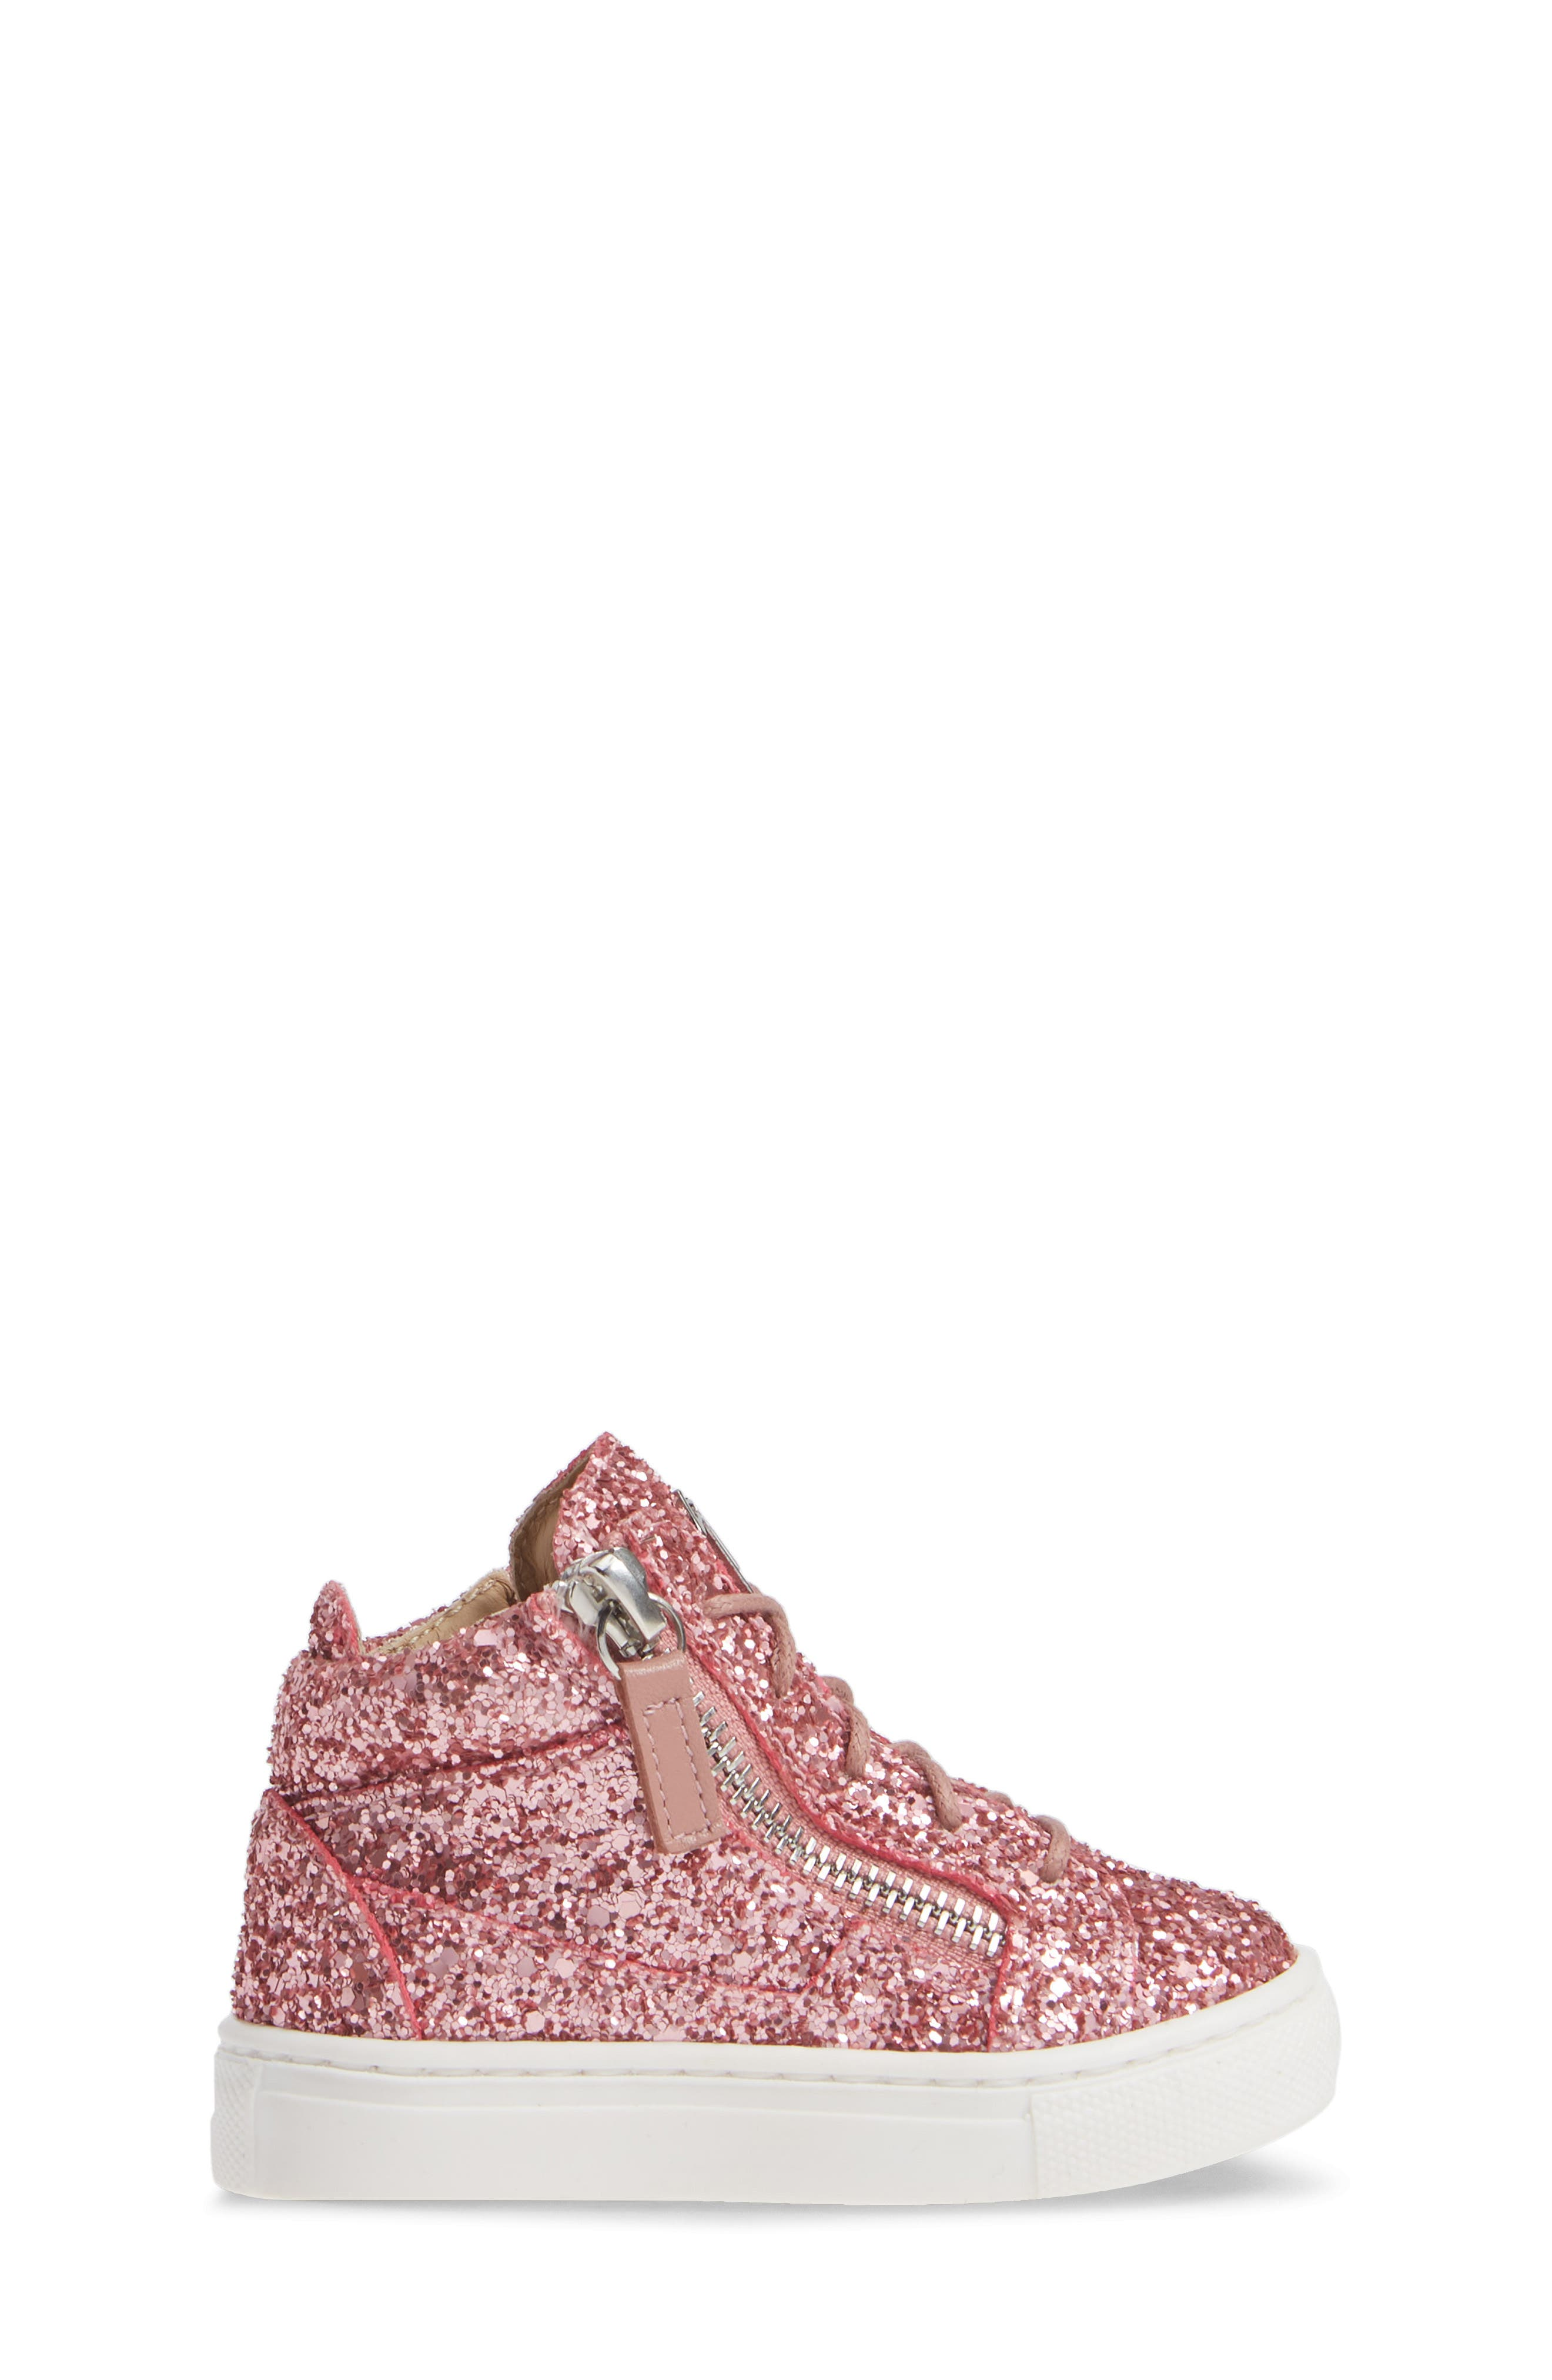 GIUSEPPE ZANOTTI, Natalie High Top Sneaker, Alternate thumbnail 3, color, LIPGLOSS